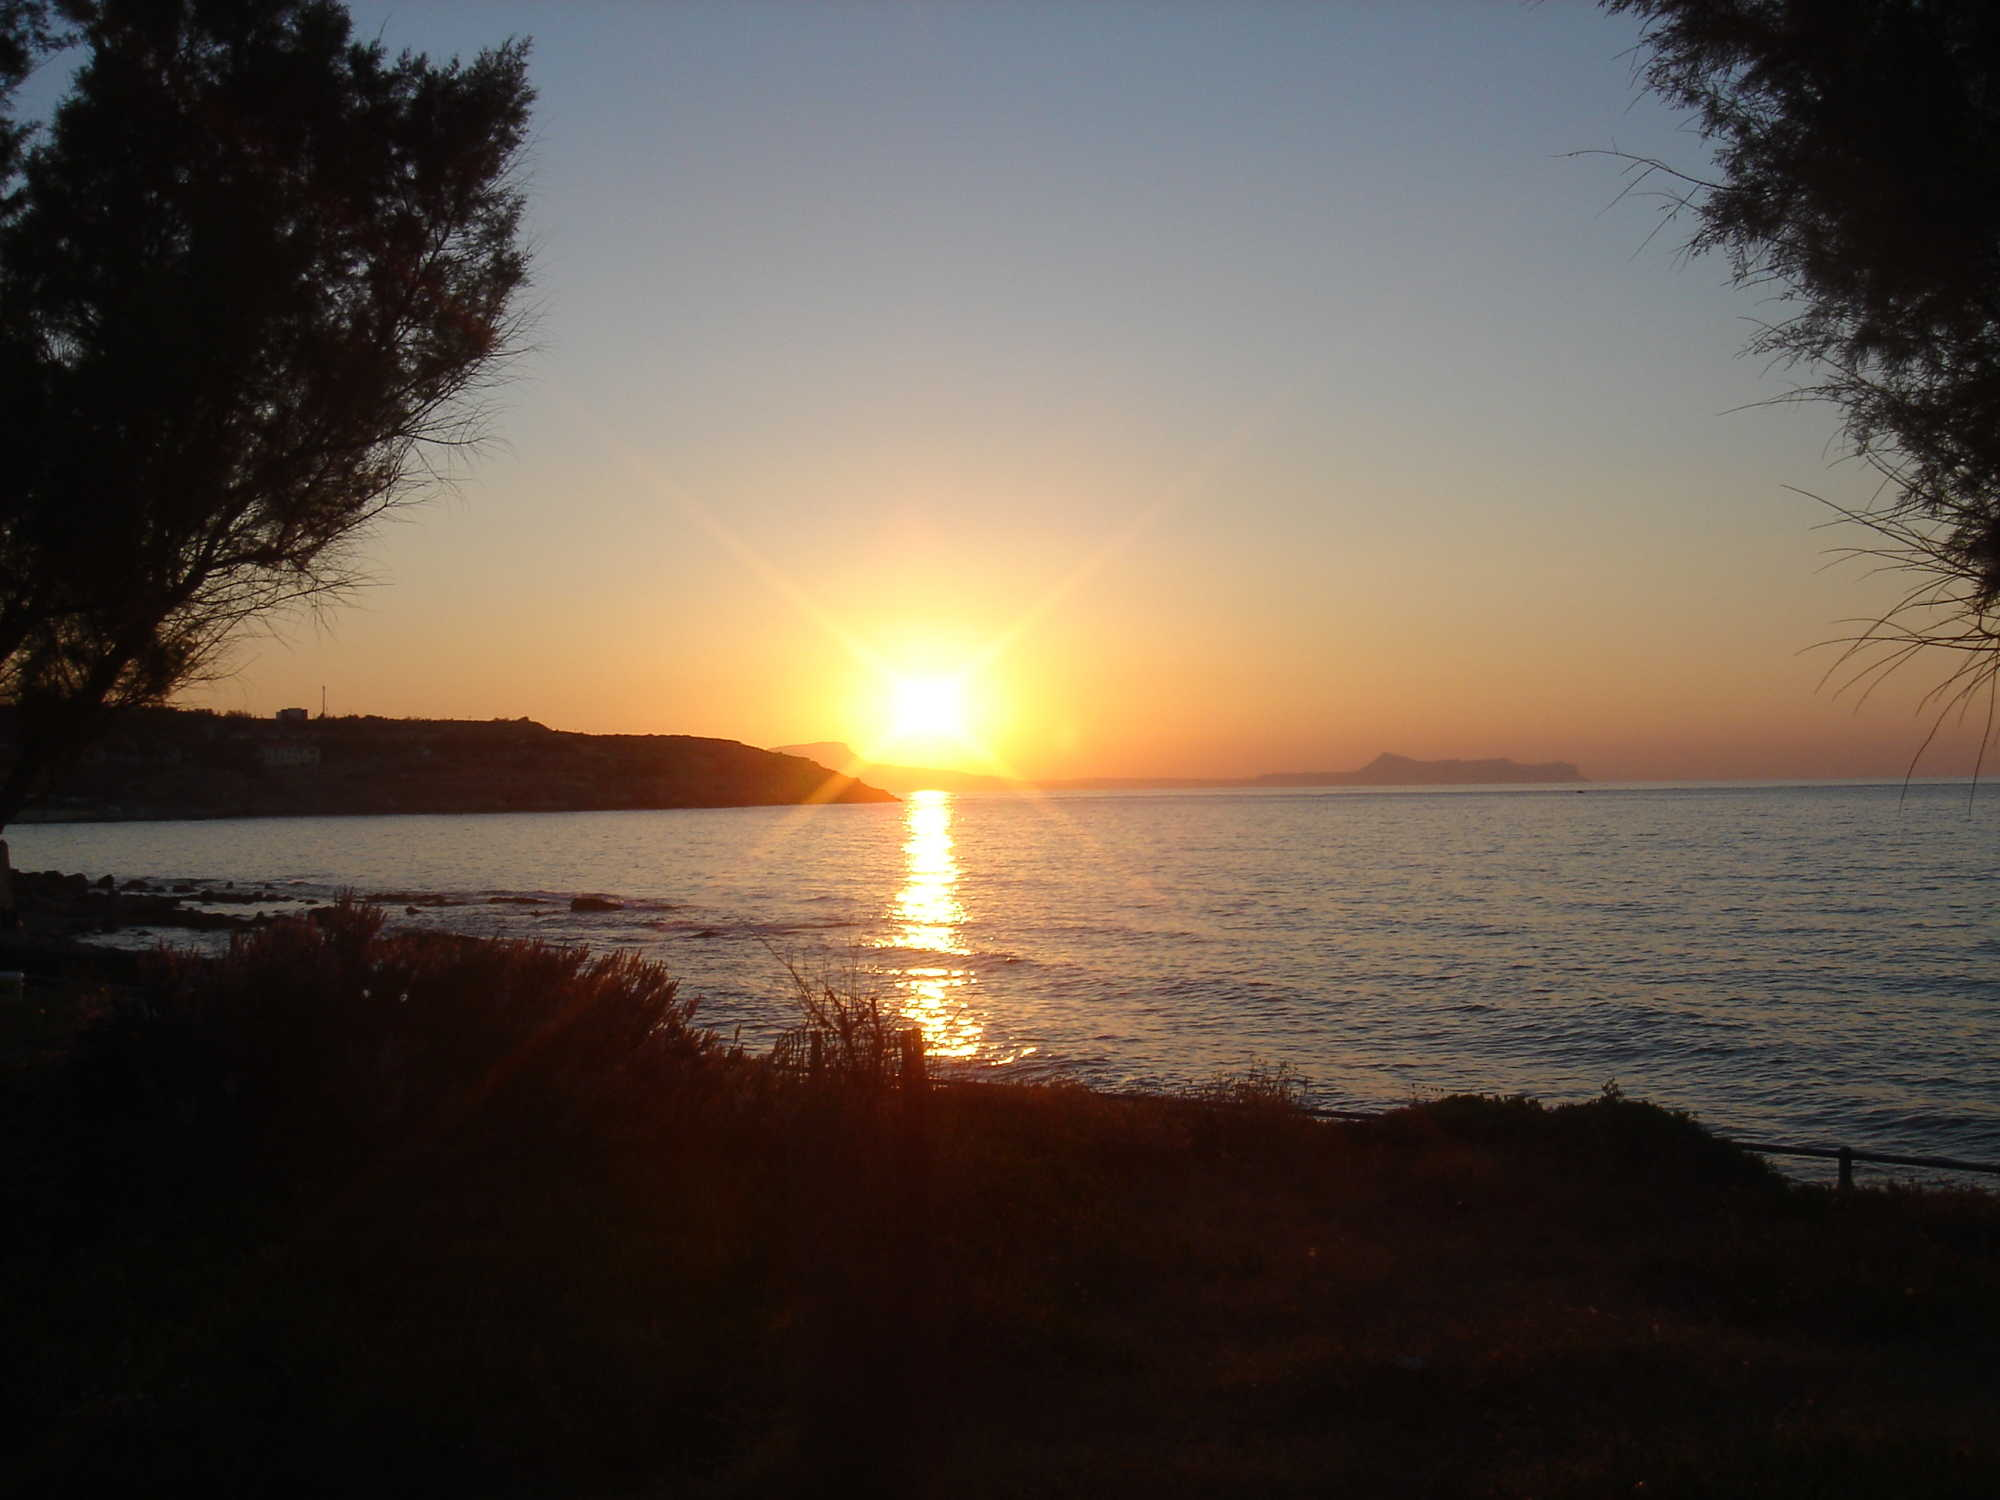 Sunset in Rethymno